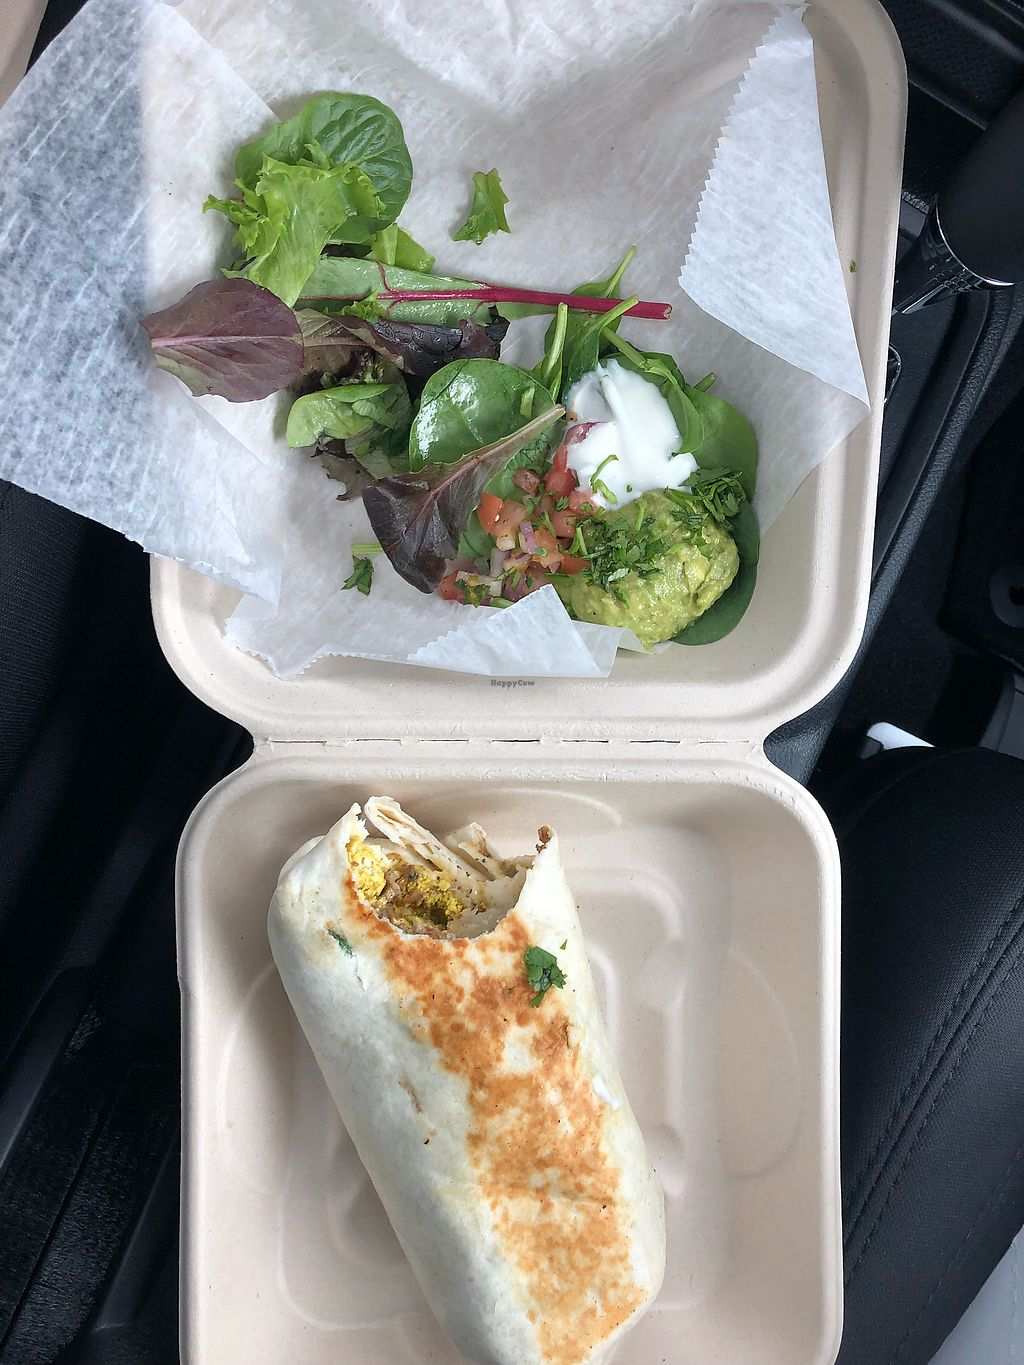 """Photo of Graze  by <a href=""""/members/profile/Awake1234"""">Awake1234</a> <br/>Take Out - Breakfast burrito  <br/> April 15, 2018  - <a href='/contact/abuse/image/73189/386398'>Report</a>"""